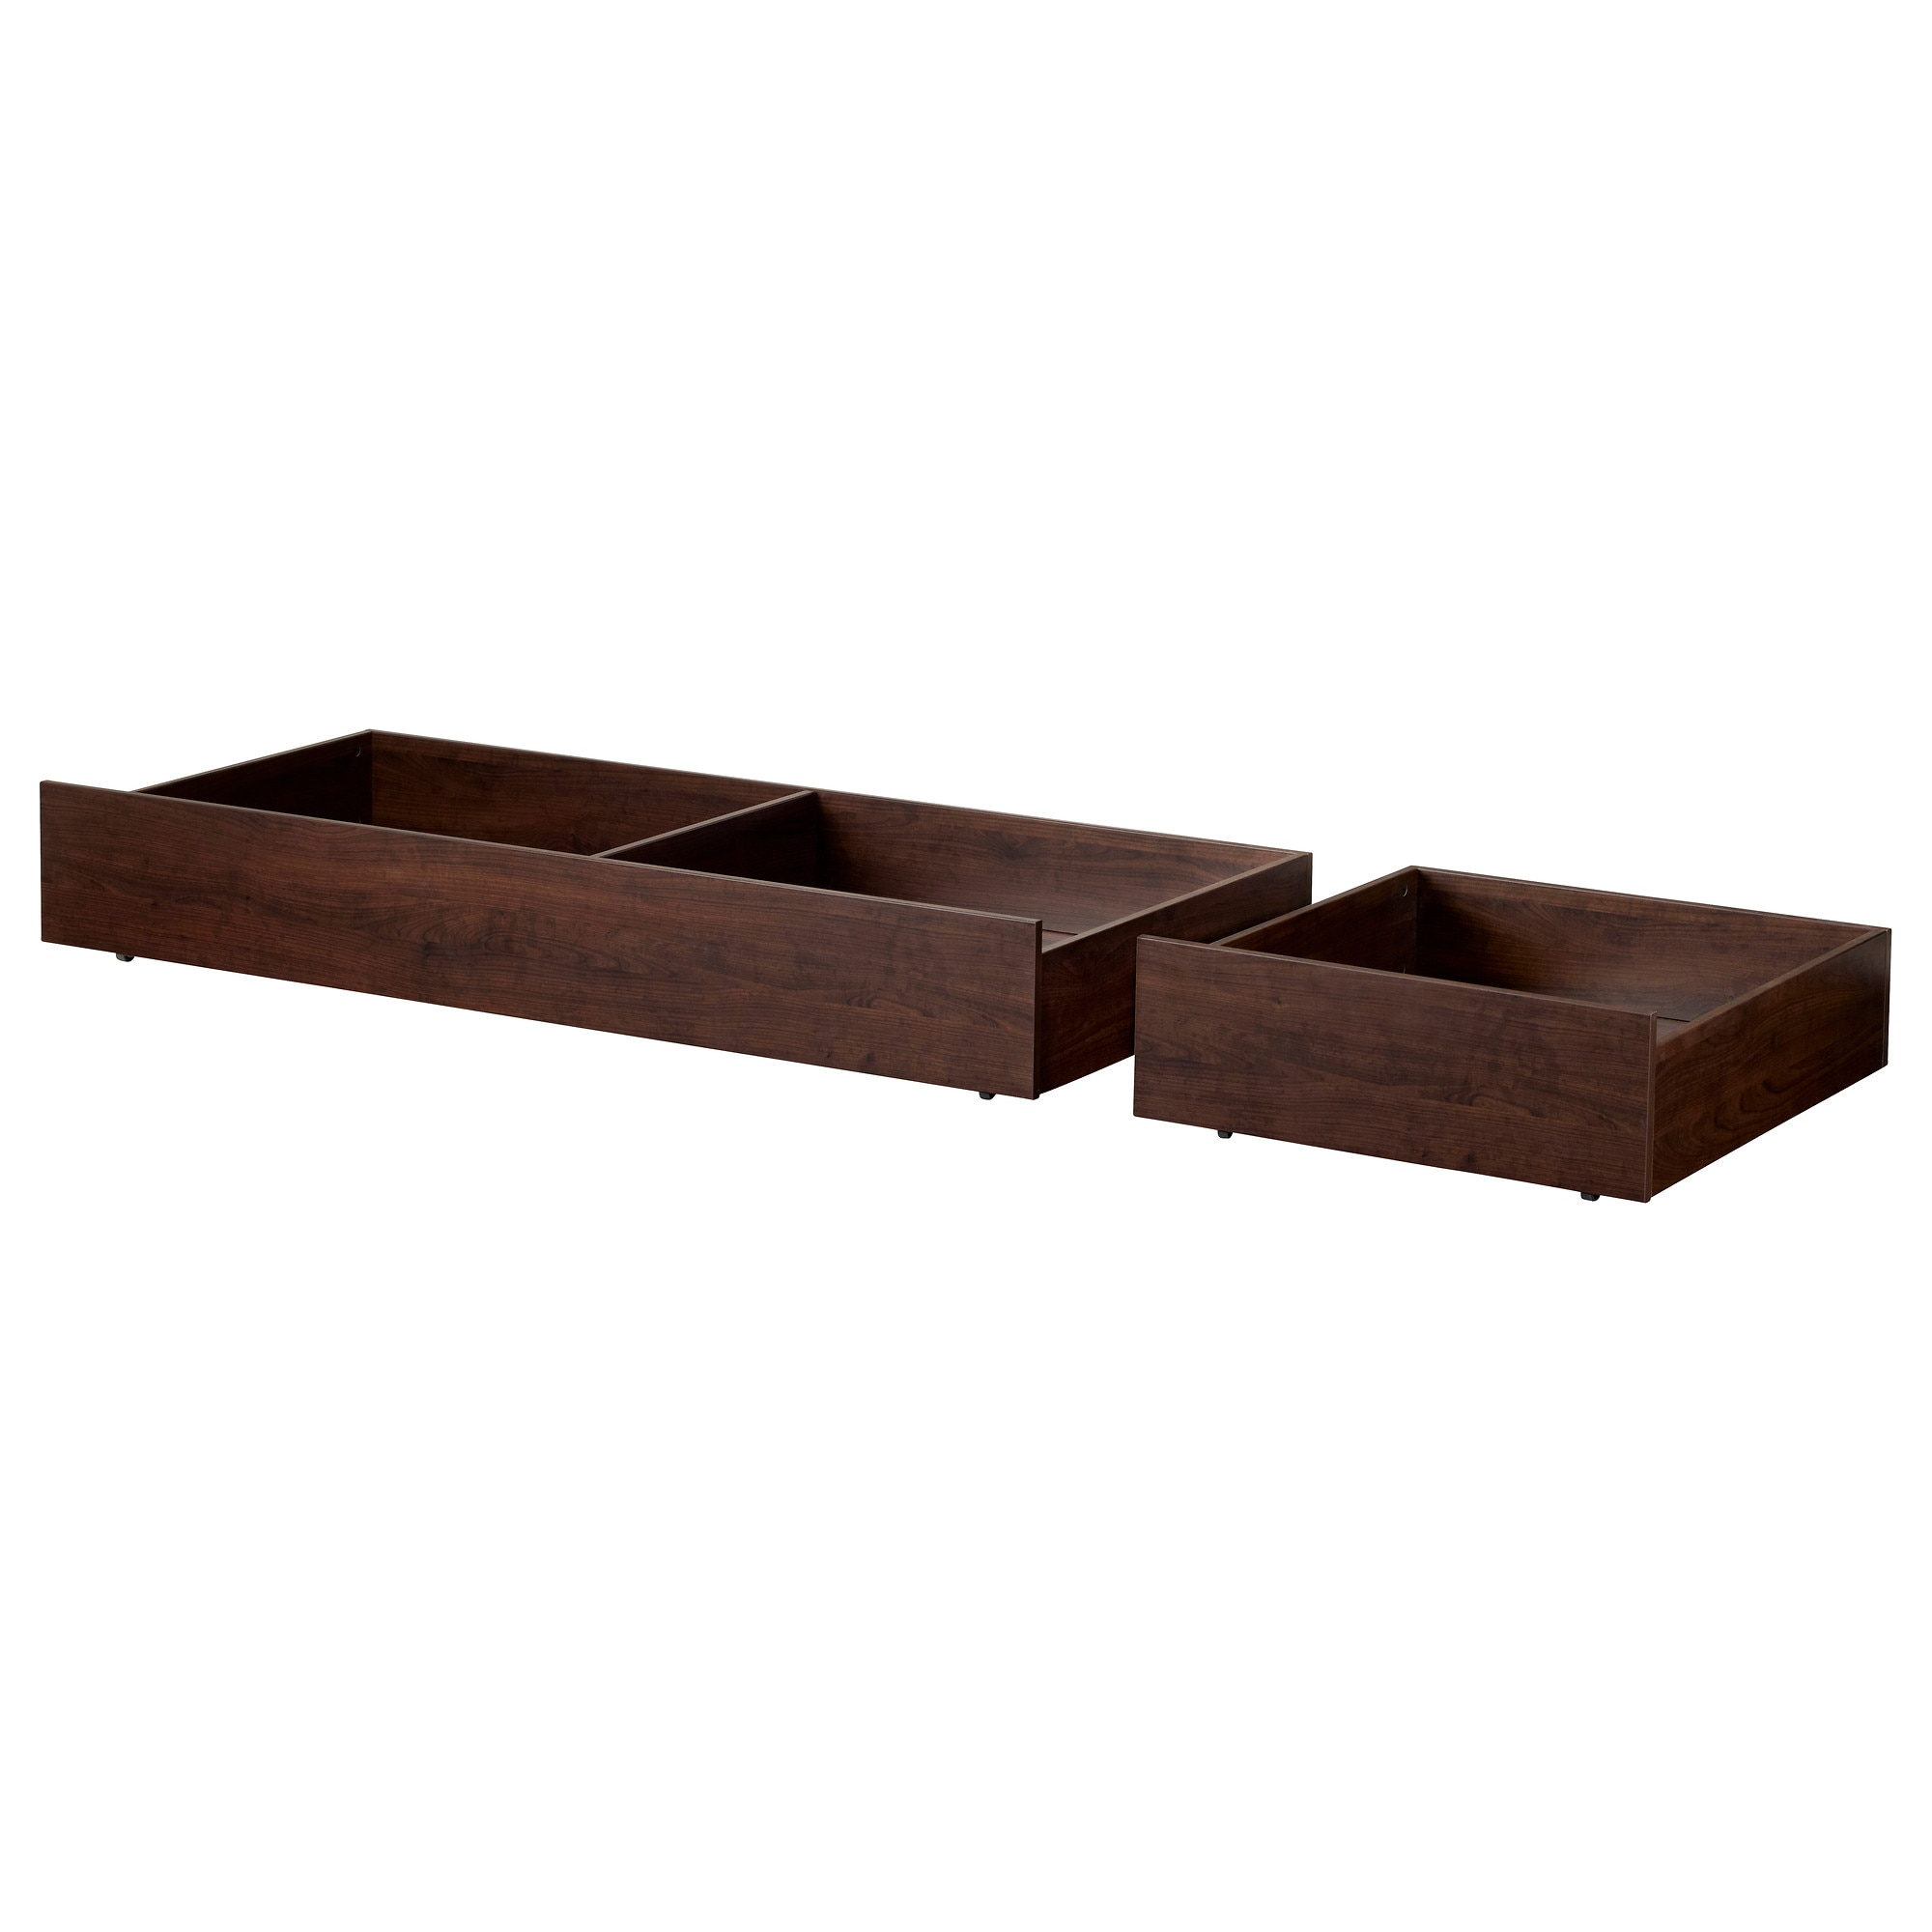 brusali underbed storage box set of 2 brown width 74 38